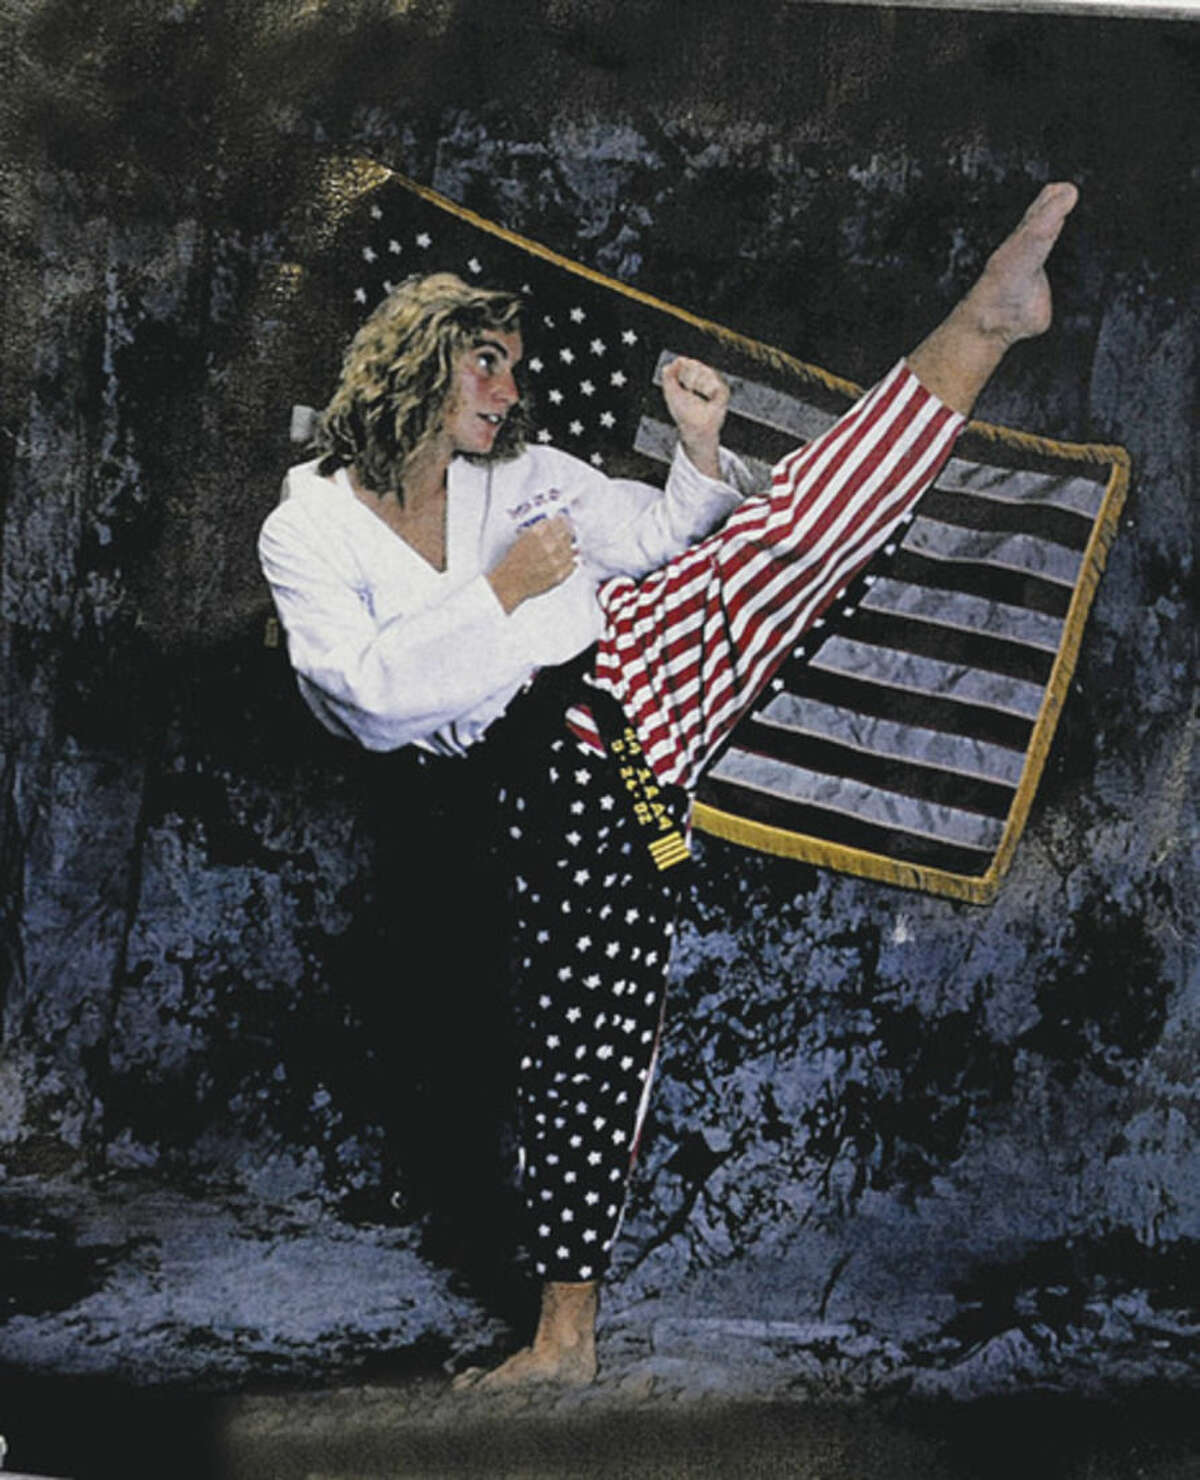 A photo of Lisa Crosby, Wilton karate instructor from a calendar of the U.S.A. Women's Team.